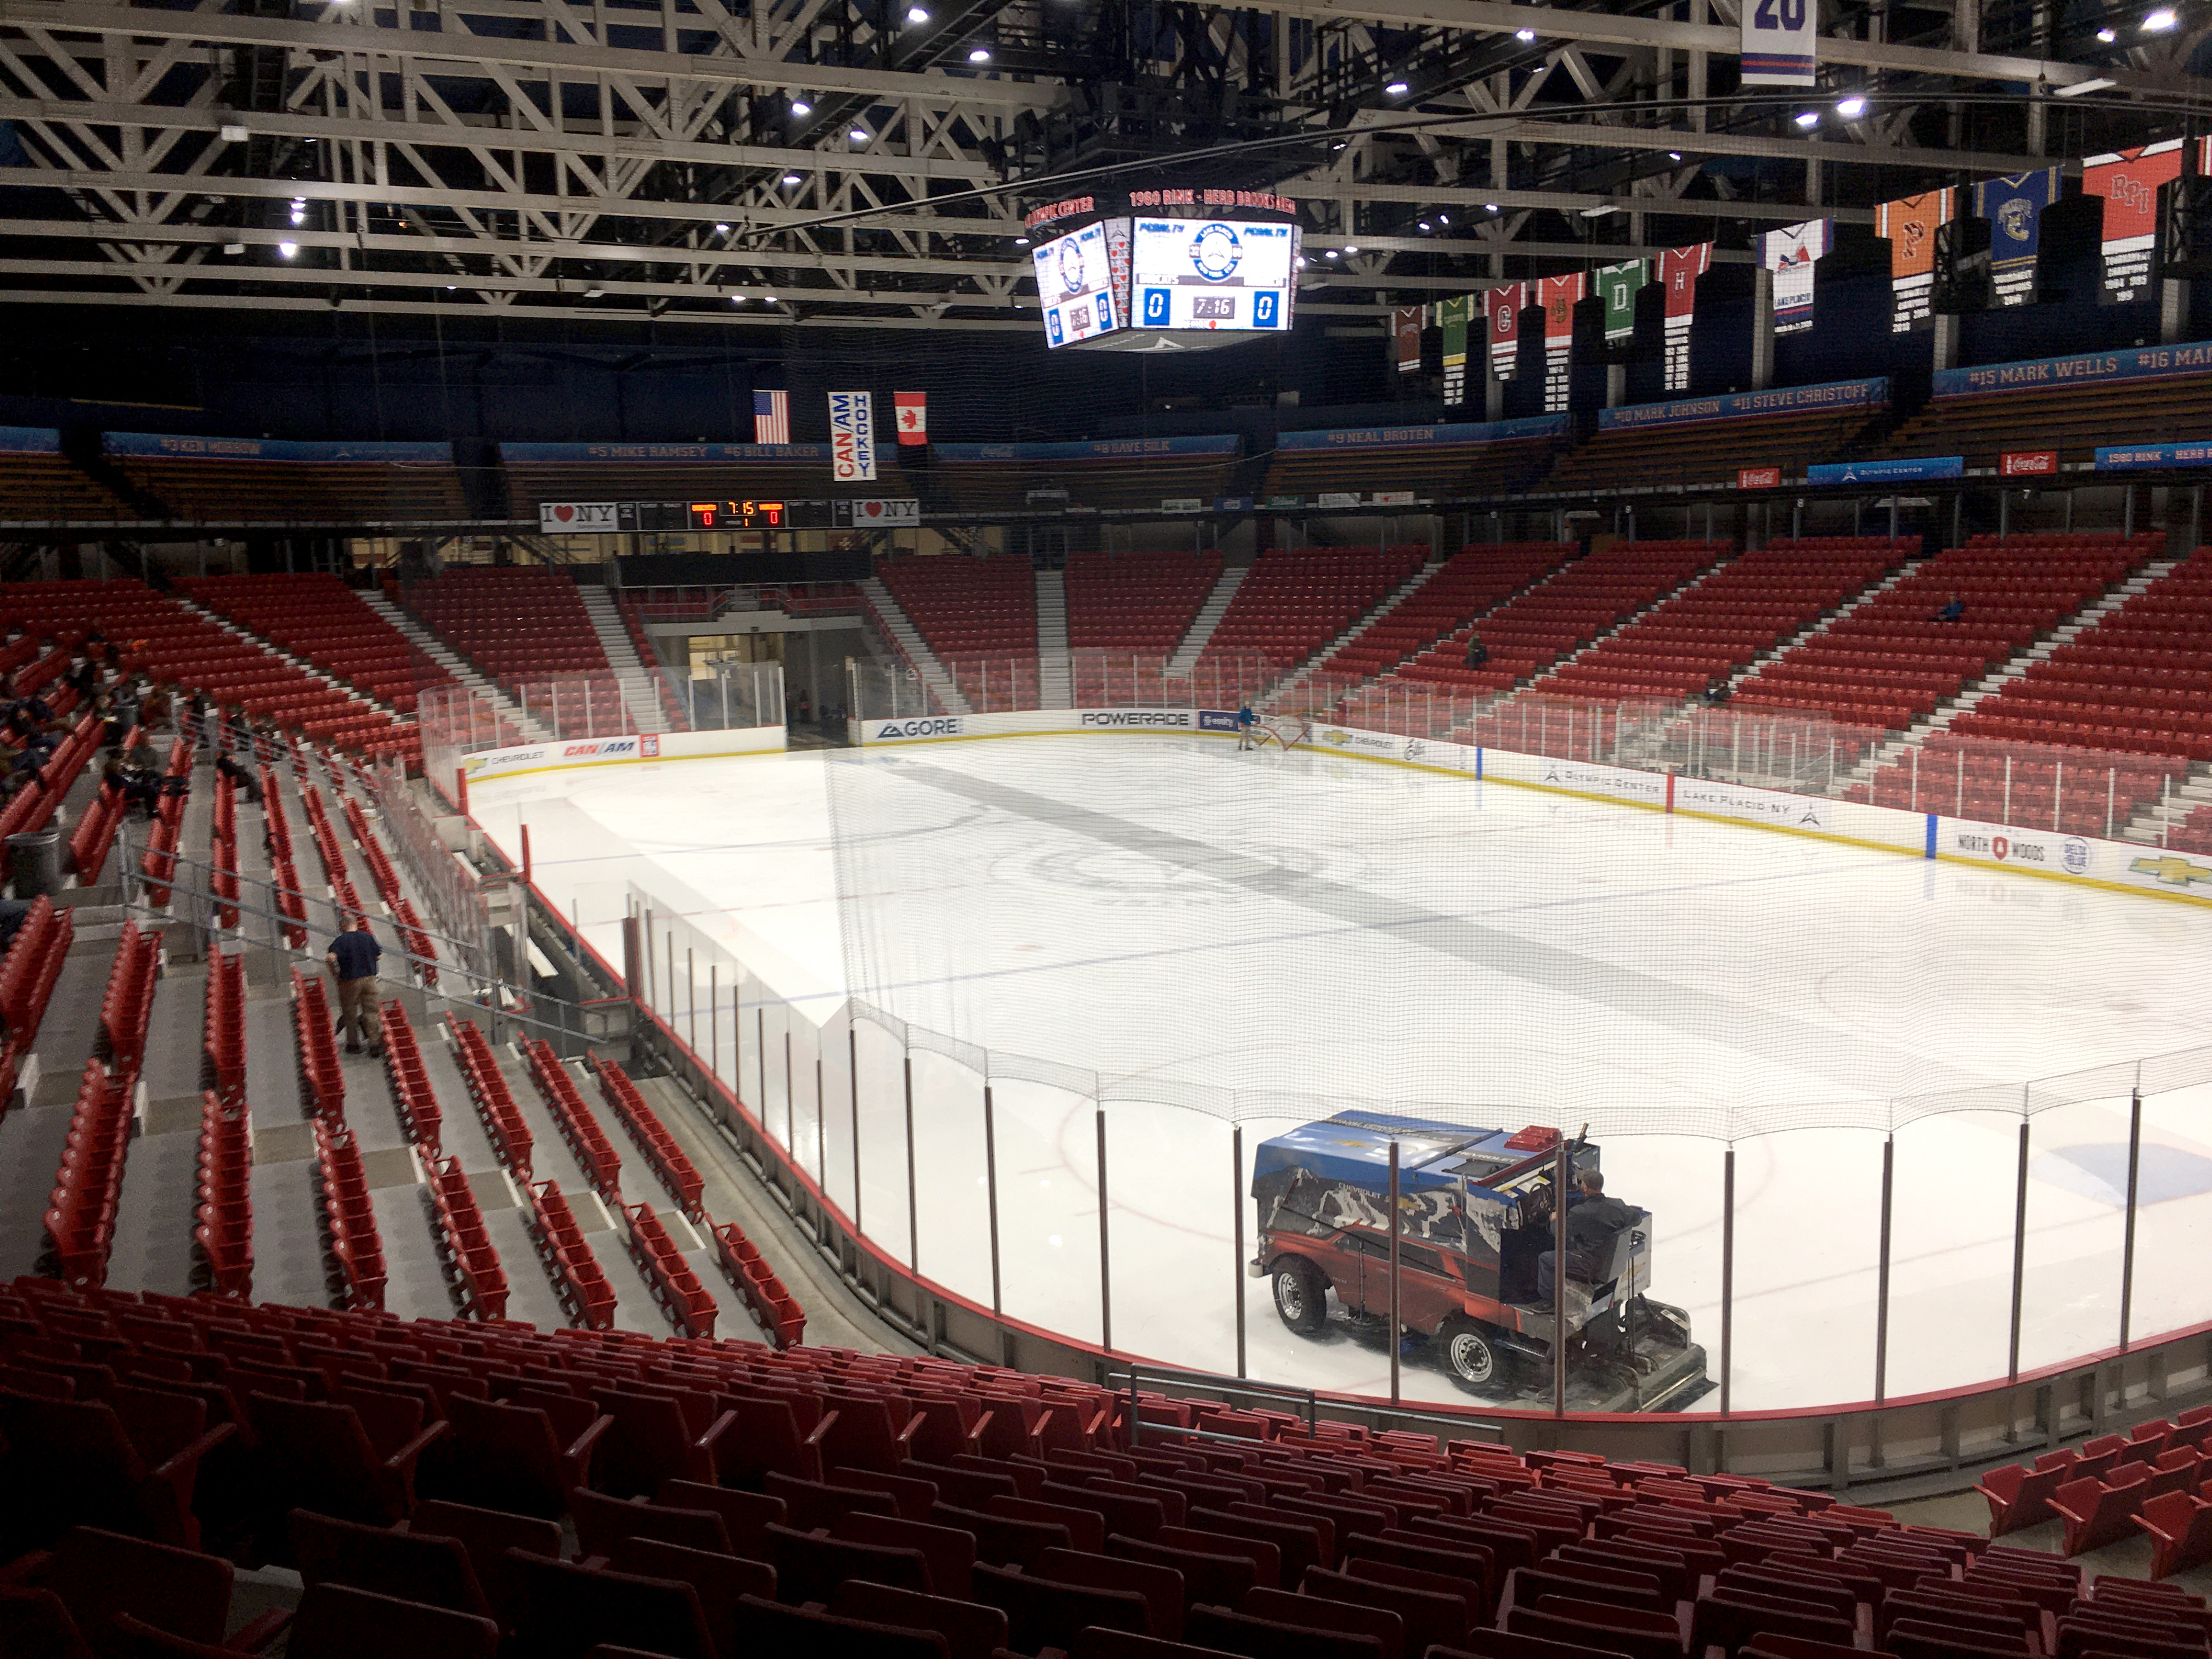 The Lake Placid Olympic Center contains the Herb Brooks Arena and 1980 Rink, two other rinks and a museum. MUST CREDIT: Washington Post photo by Chuck Culpepper.